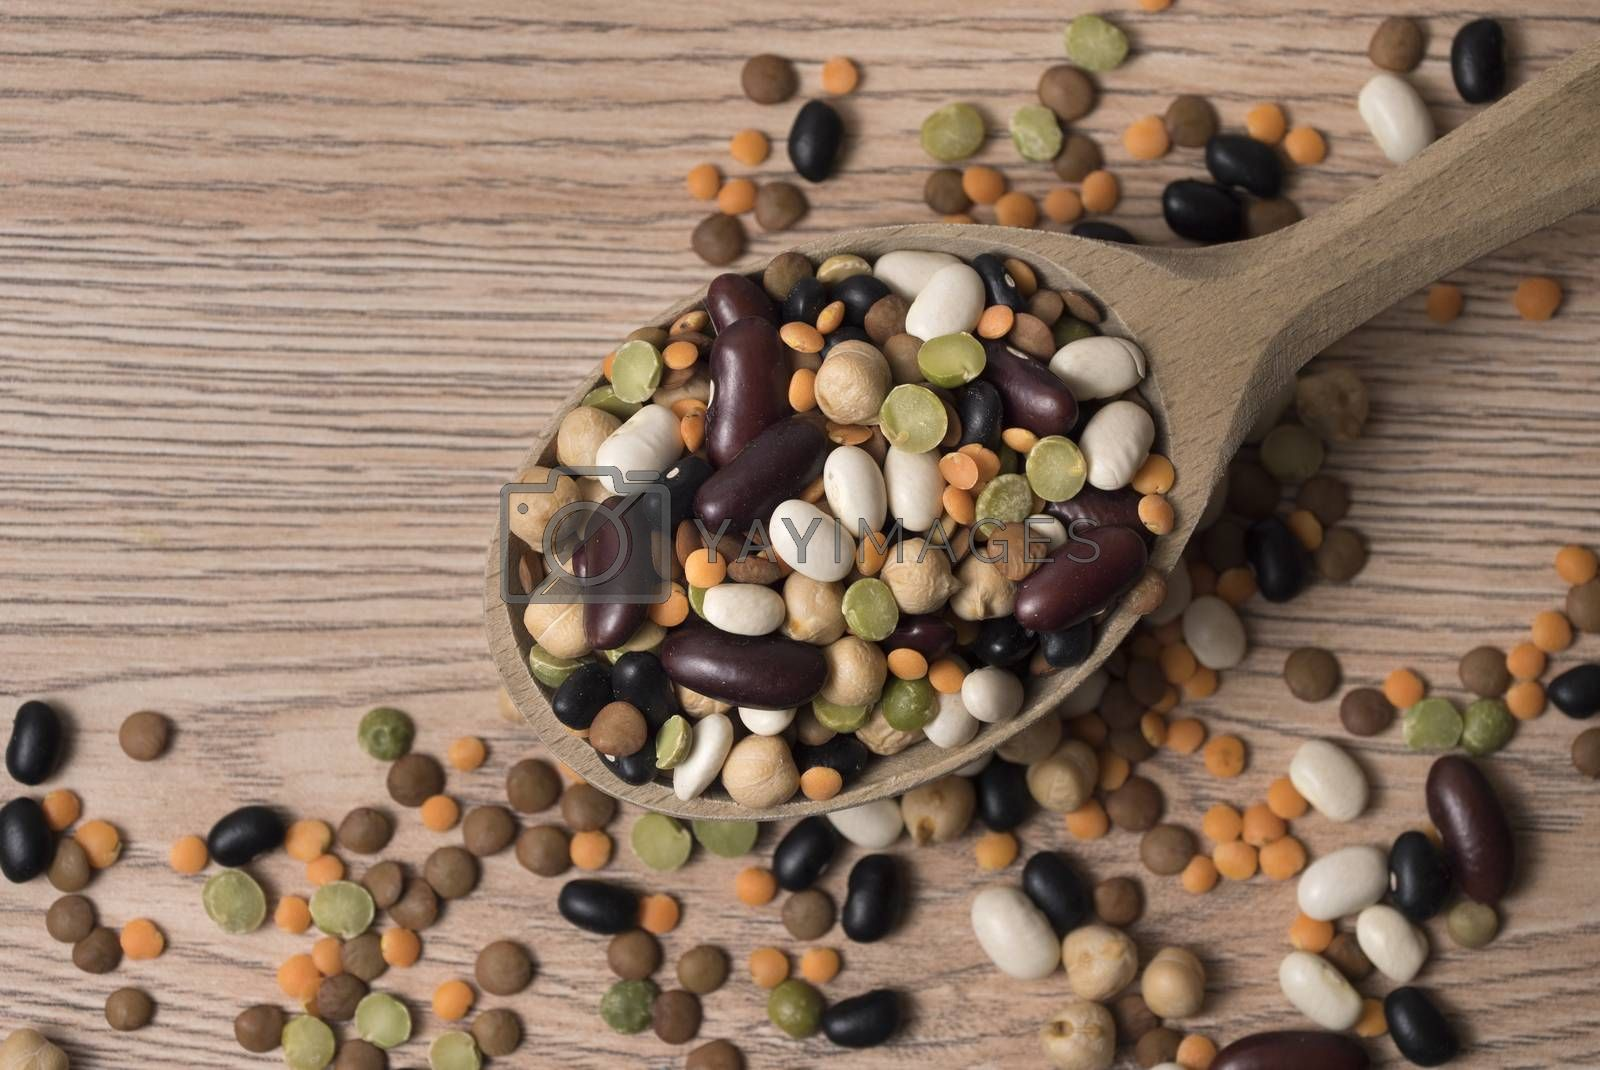 Royalty free image of Legumes of various kinds in a wooden spoon on the table. by phortcach